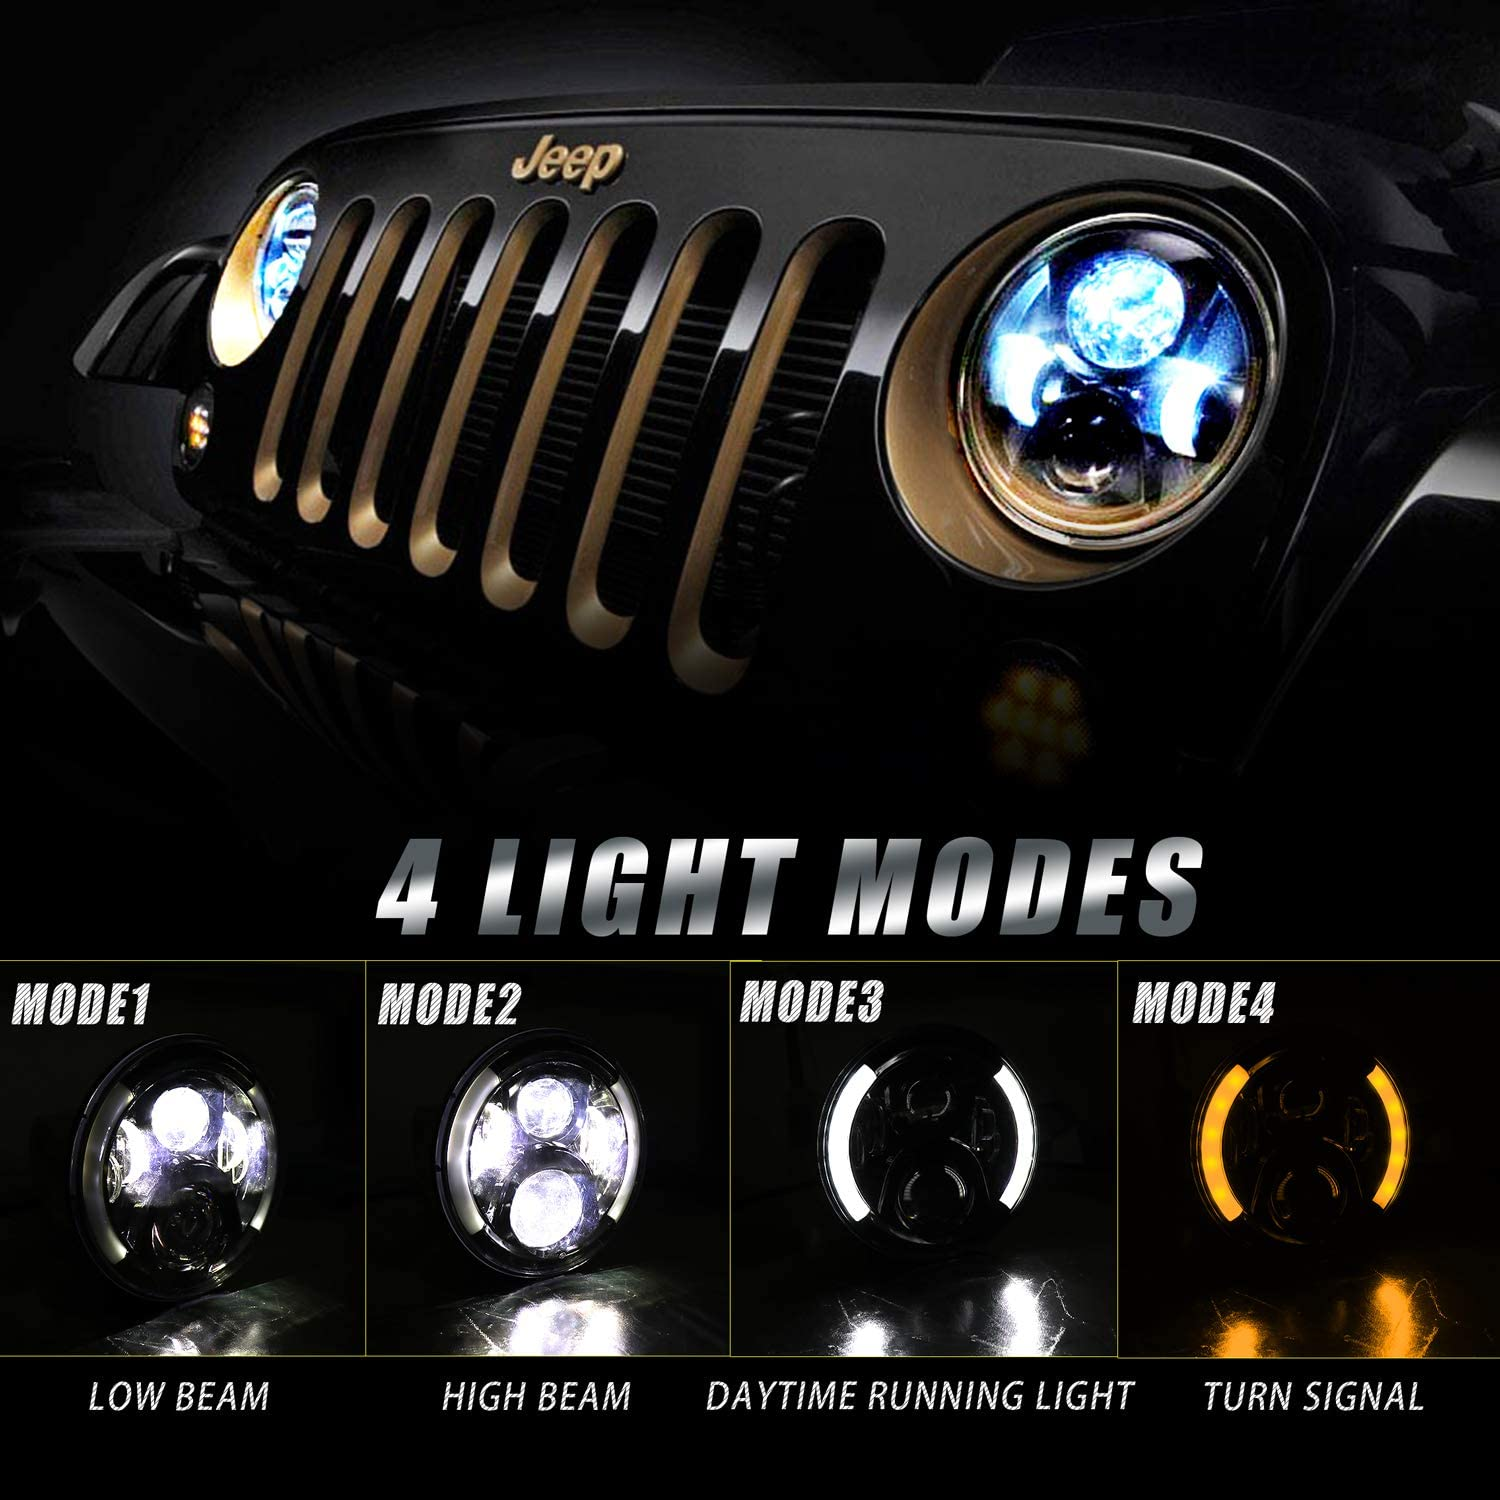 Jeep LED Headlights with Halo BEEYEO 7 Inch LED Headlights 120W Round Headlamp with Daytime Running Light DRL Turn Signal High Low Beam for Jeep Wrangler JK TJ LJ CJ with H4 H13 Adapter 2PCS